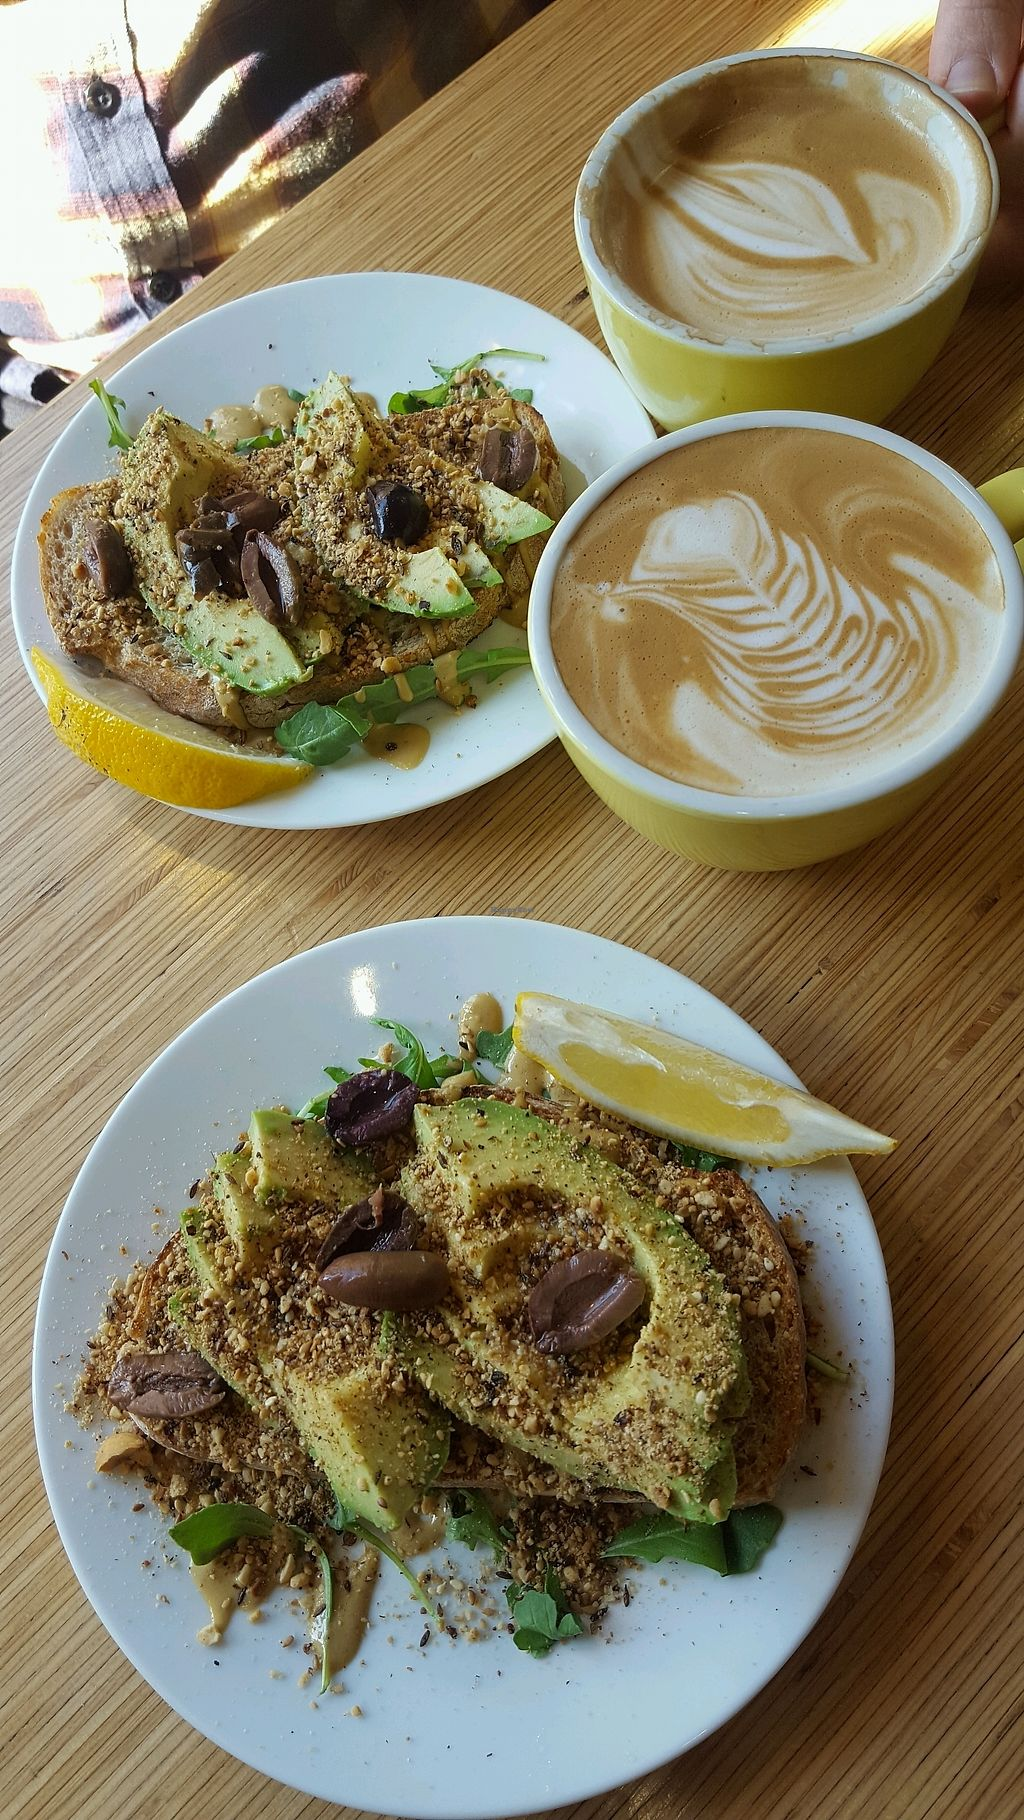 """Photo of Double Black  by <a href=""""/members/profile/ChantelleSmith"""">ChantelleSmith</a> <br/>Avocado toast can be made vegan (skip the cheese) and good coffees with almond milk <br/> September 25, 2017  - <a href='/contact/abuse/image/101113/308091'>Report</a>"""